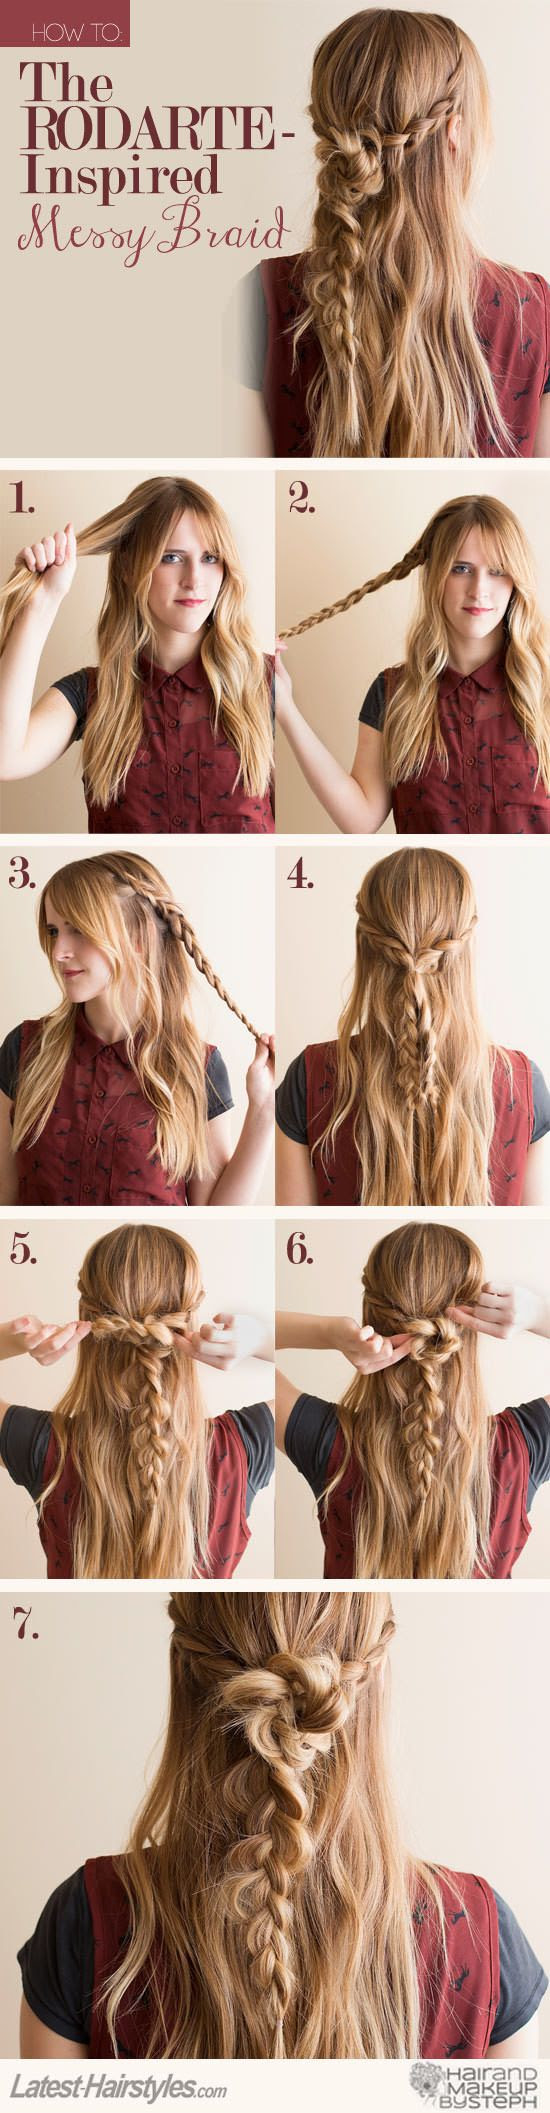 Rodarte inspired braid